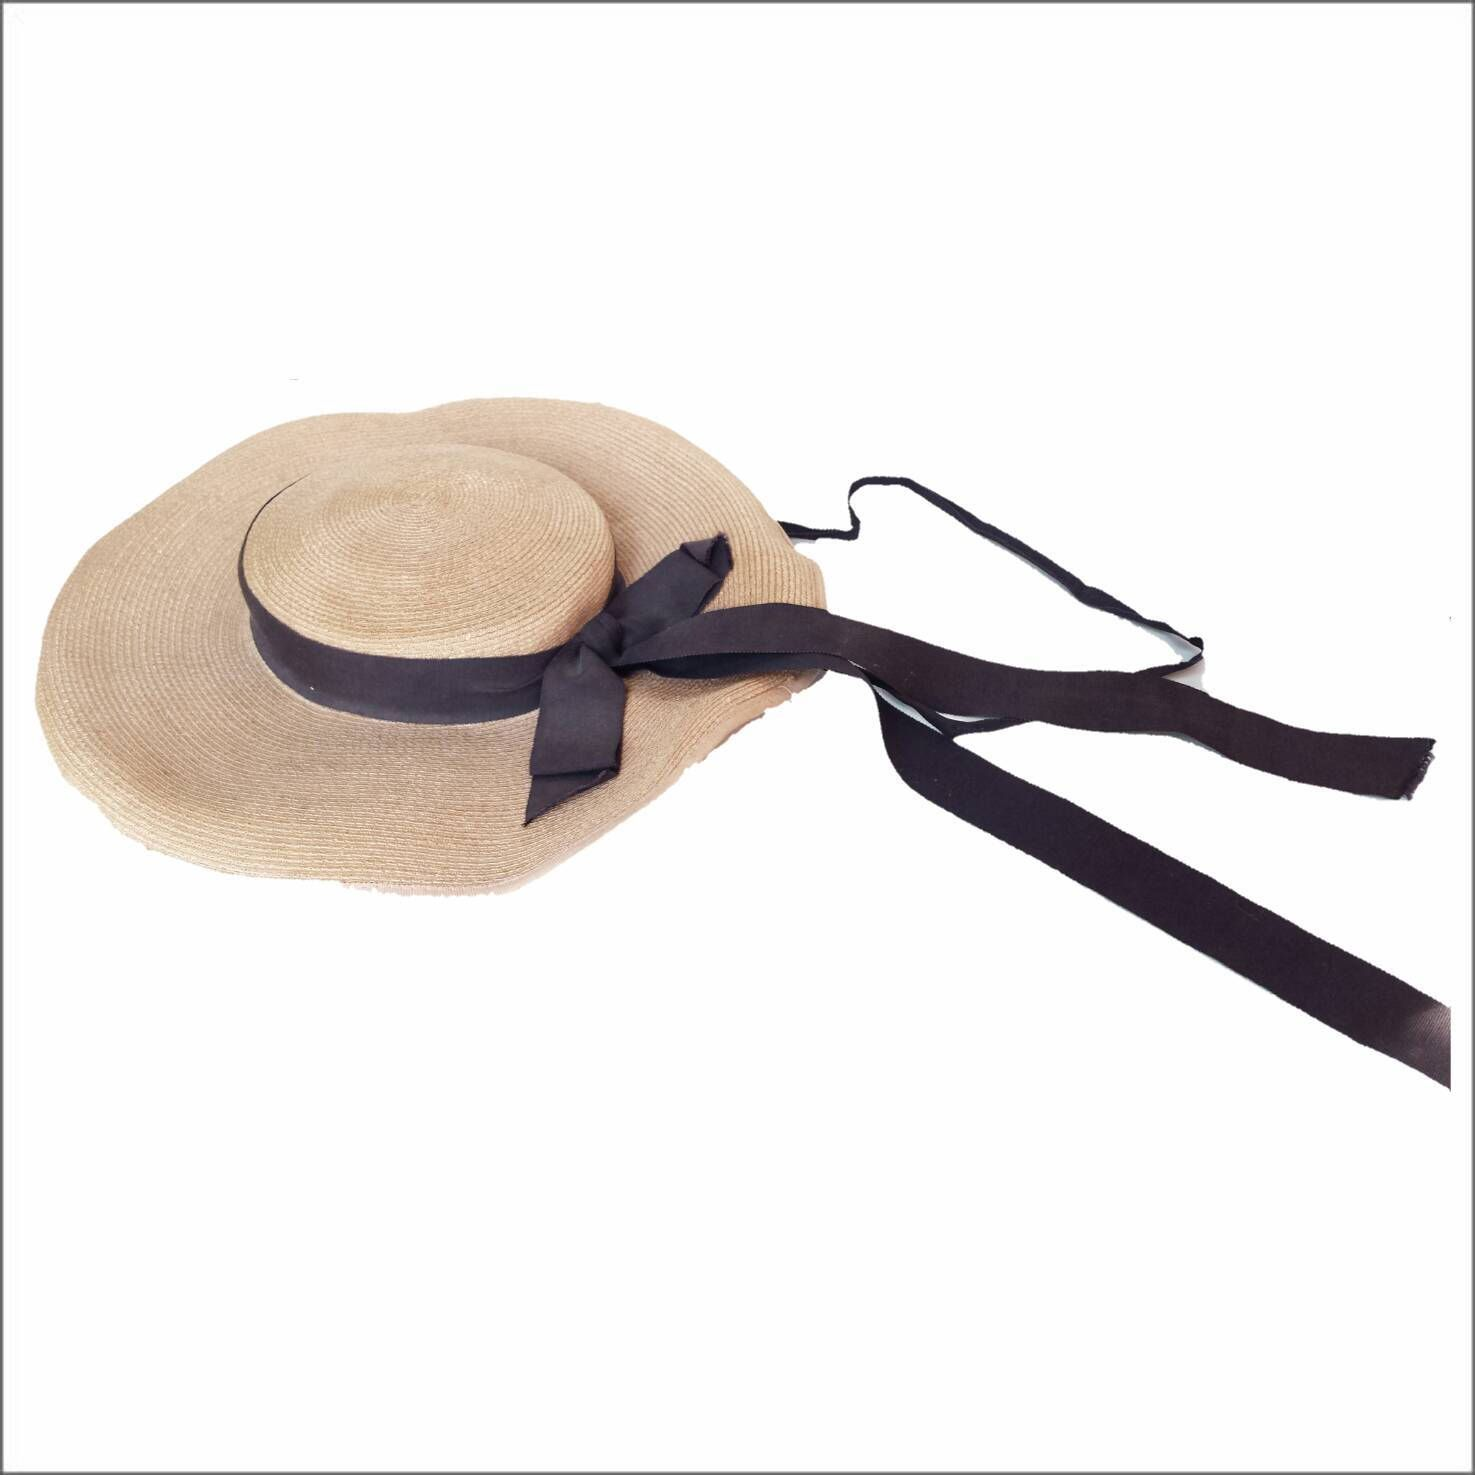 3db49bd129 Ladies 1930s Romantic Vintage Wide Brim Panama Boater Soft Straw Hat with  Long Navy Ribbon Bow